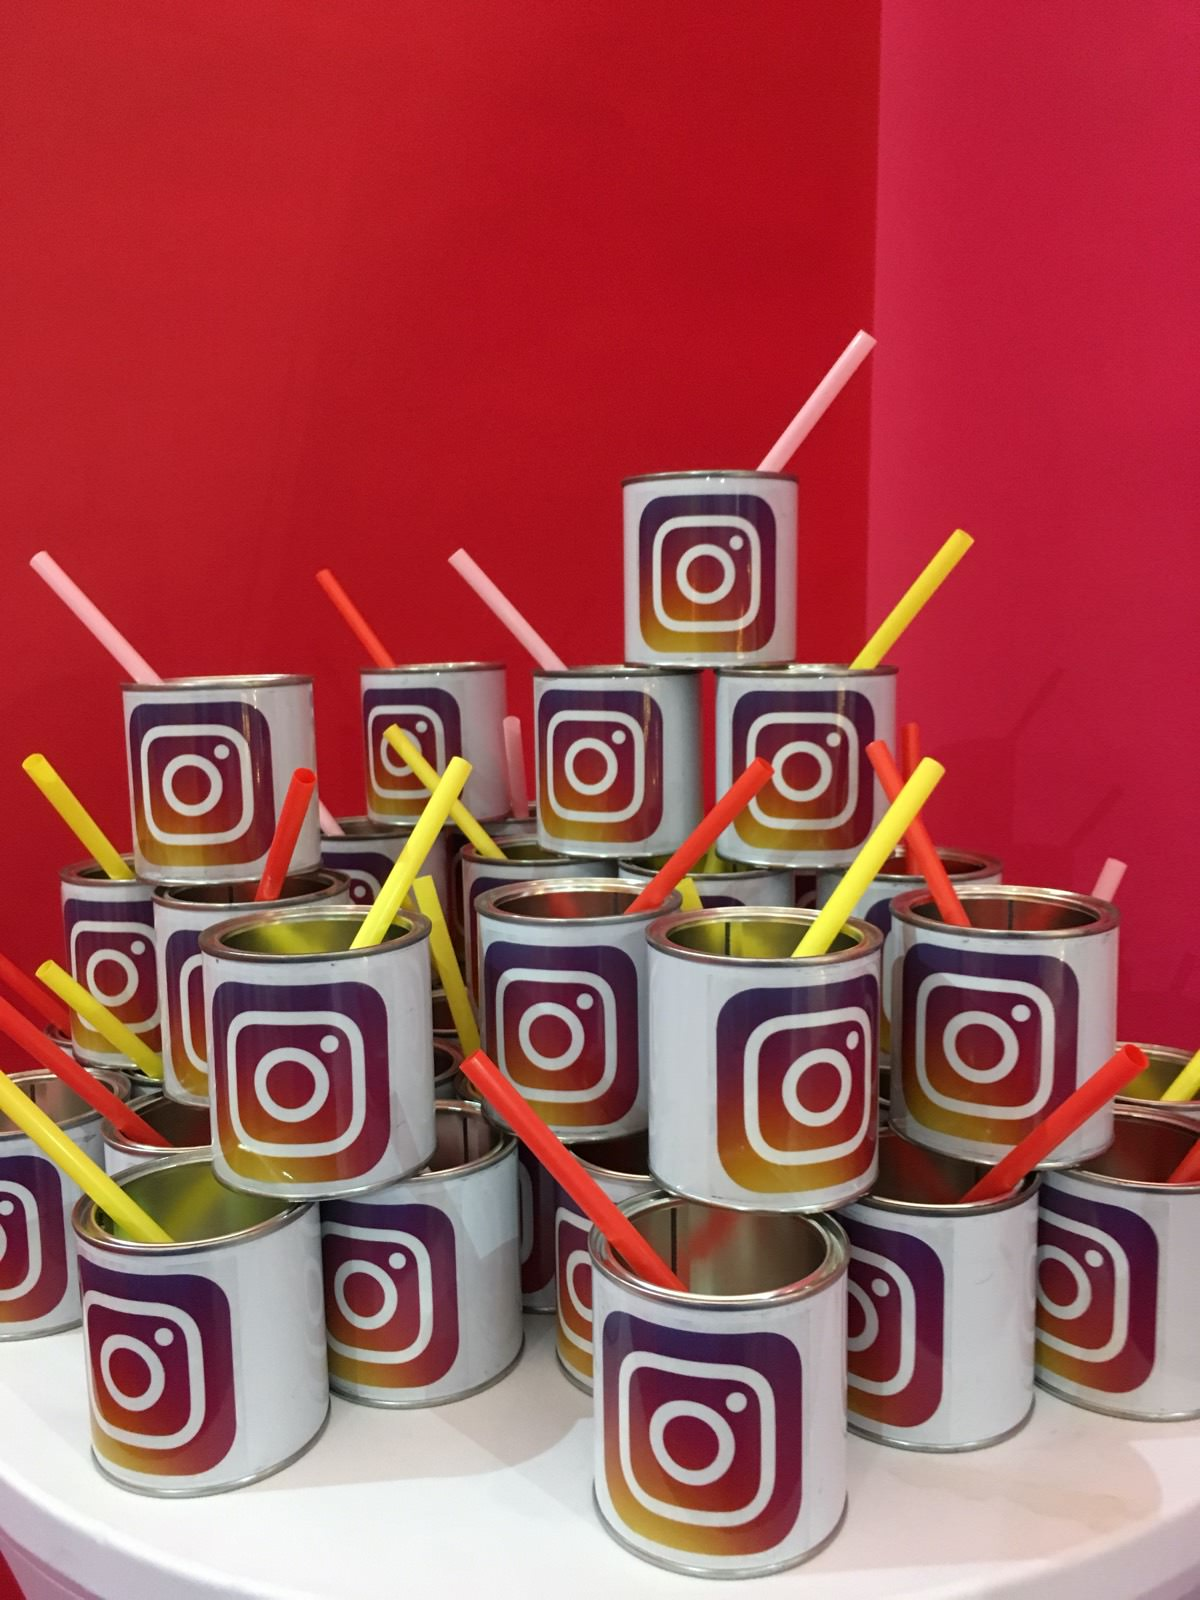 Instagram lounge at Lucca Comics for Full Swing